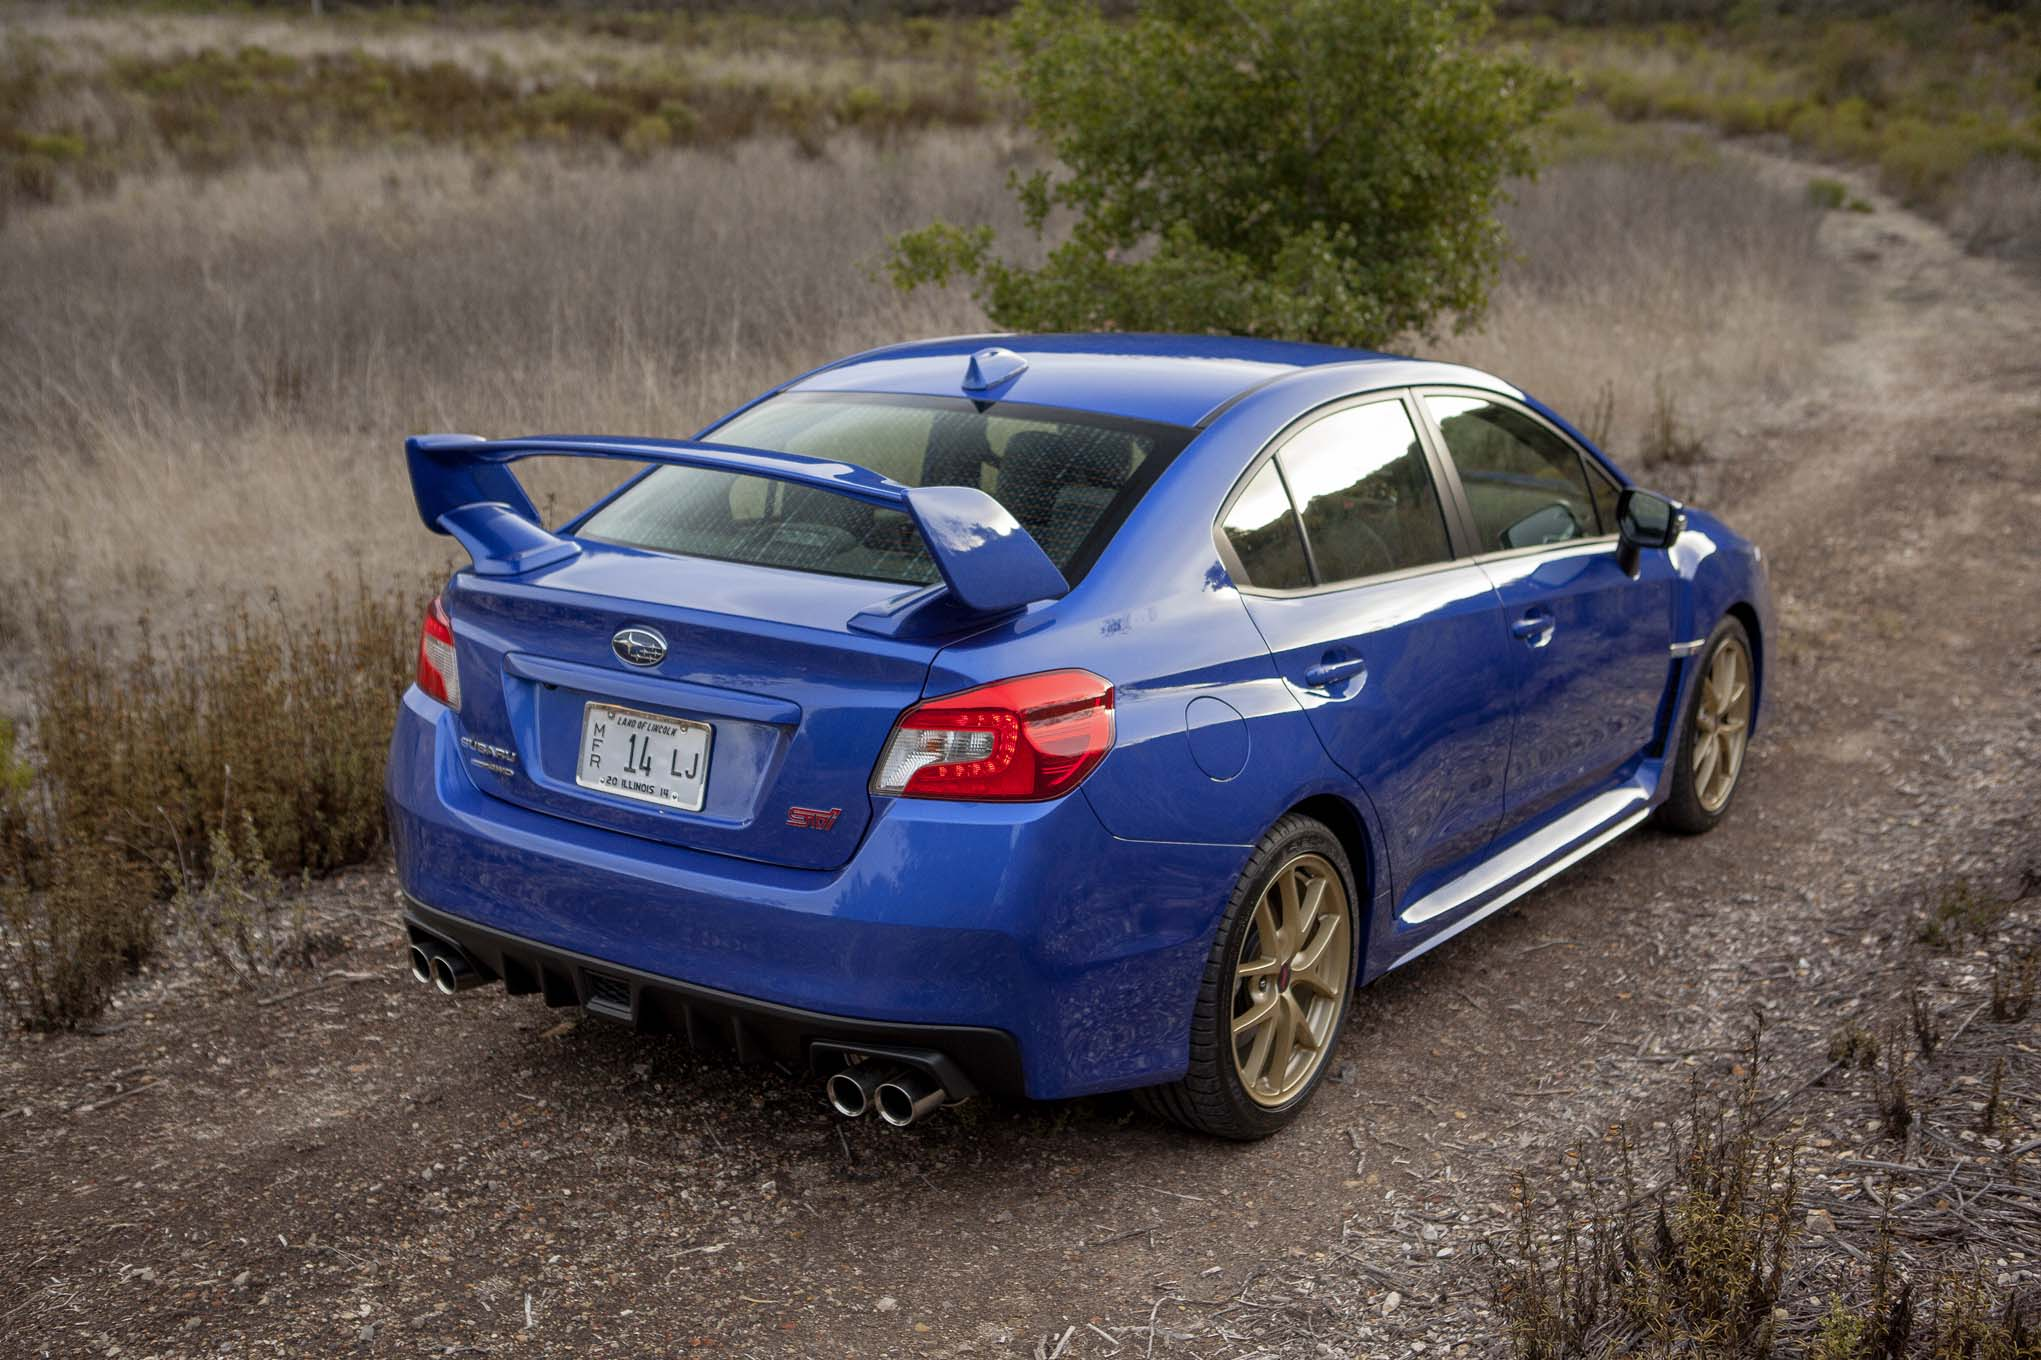 2015-Subaru-WRX-STI-rear-three-quarter.jpg